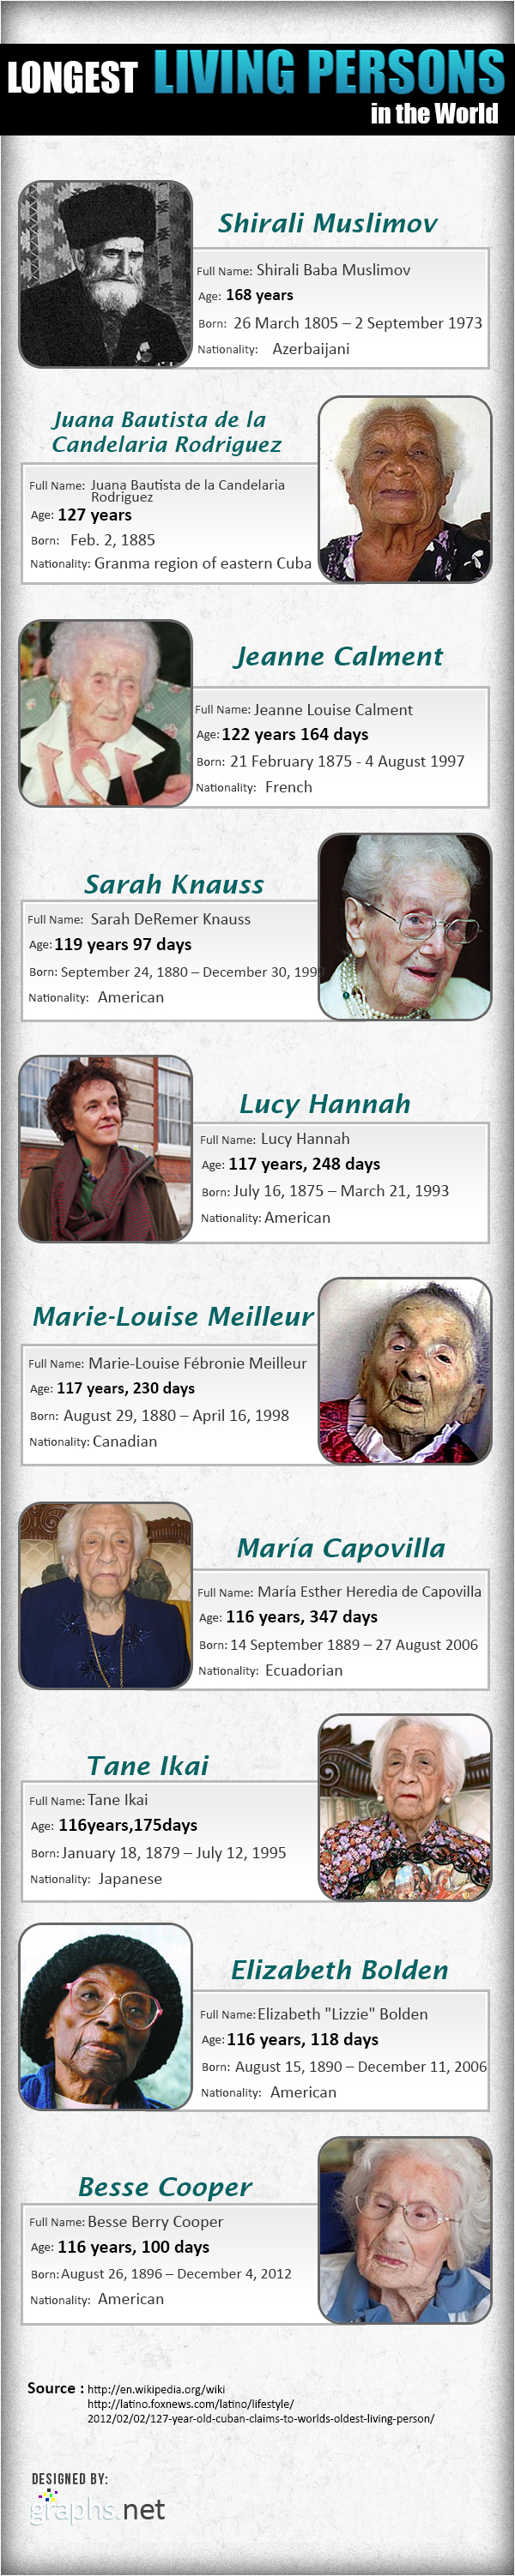 Worlds 10 Longest Living Persons